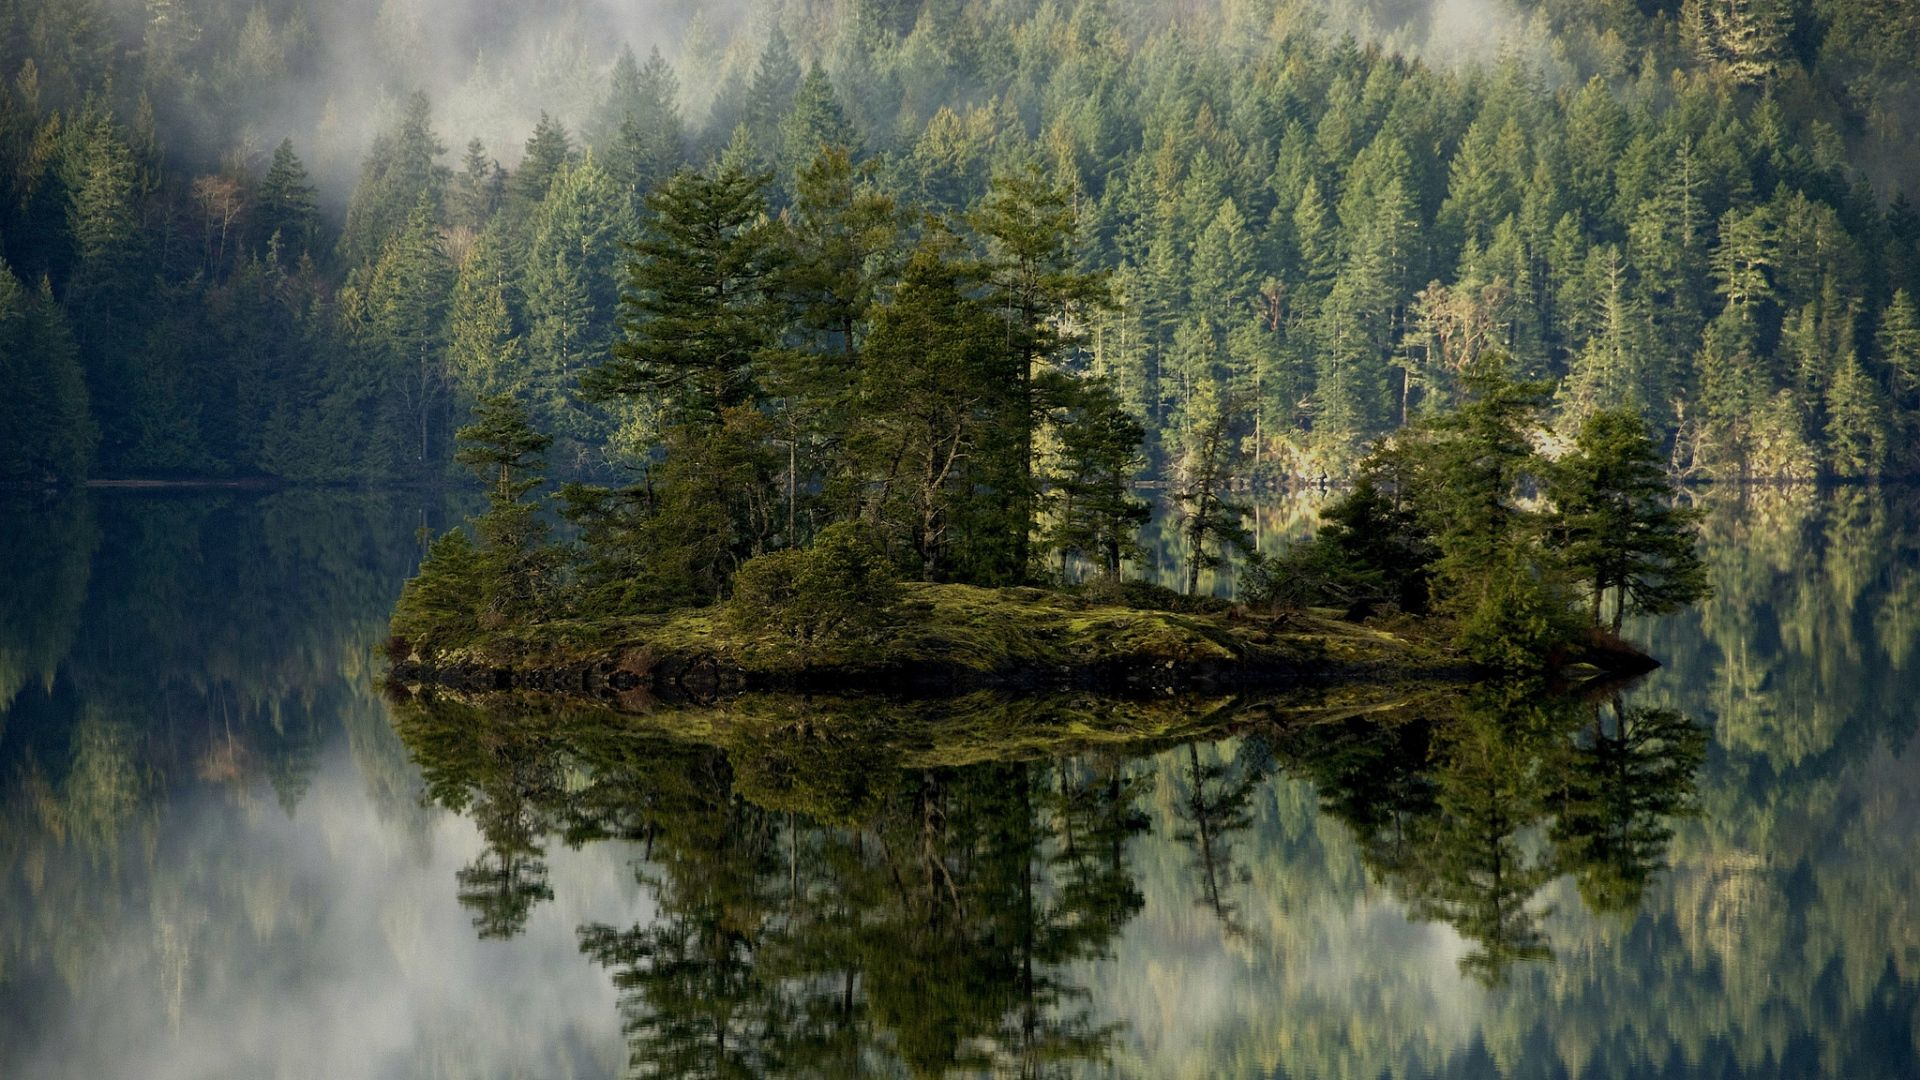 Wallpaper Mirror Reflection Island Forest Fir Tree Amazing 1920x1080